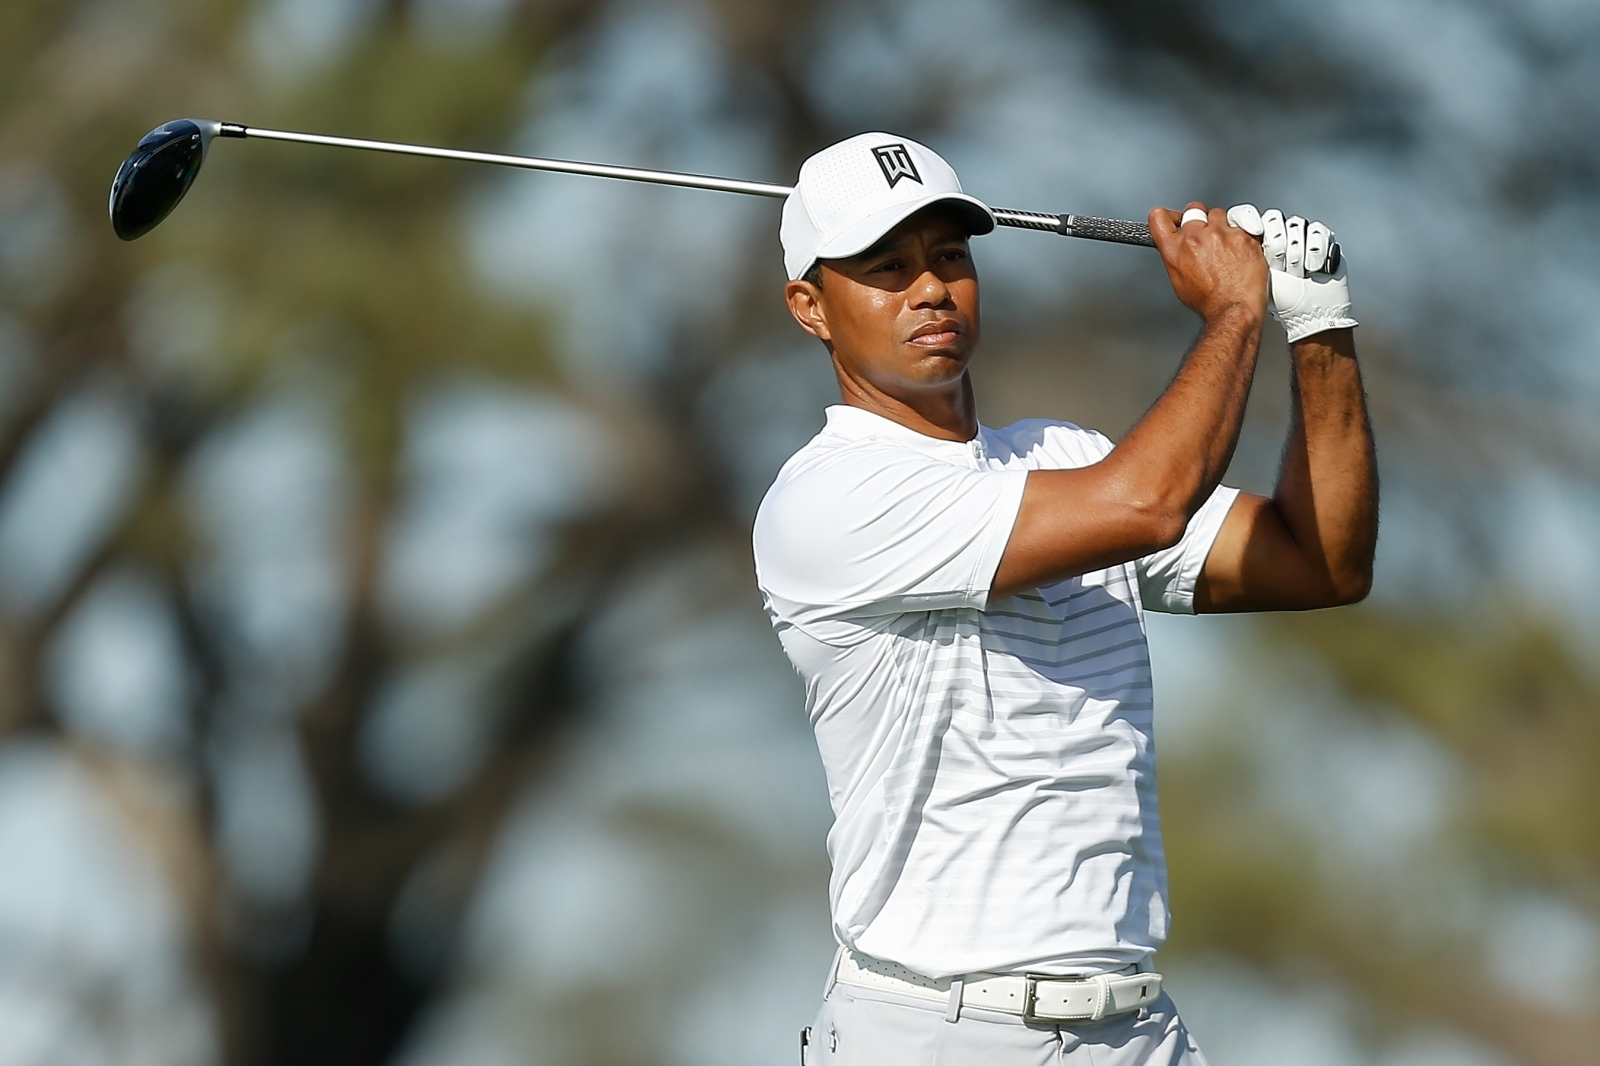 Tiger Woods talks return to Genesis Open: 'It's winning time'